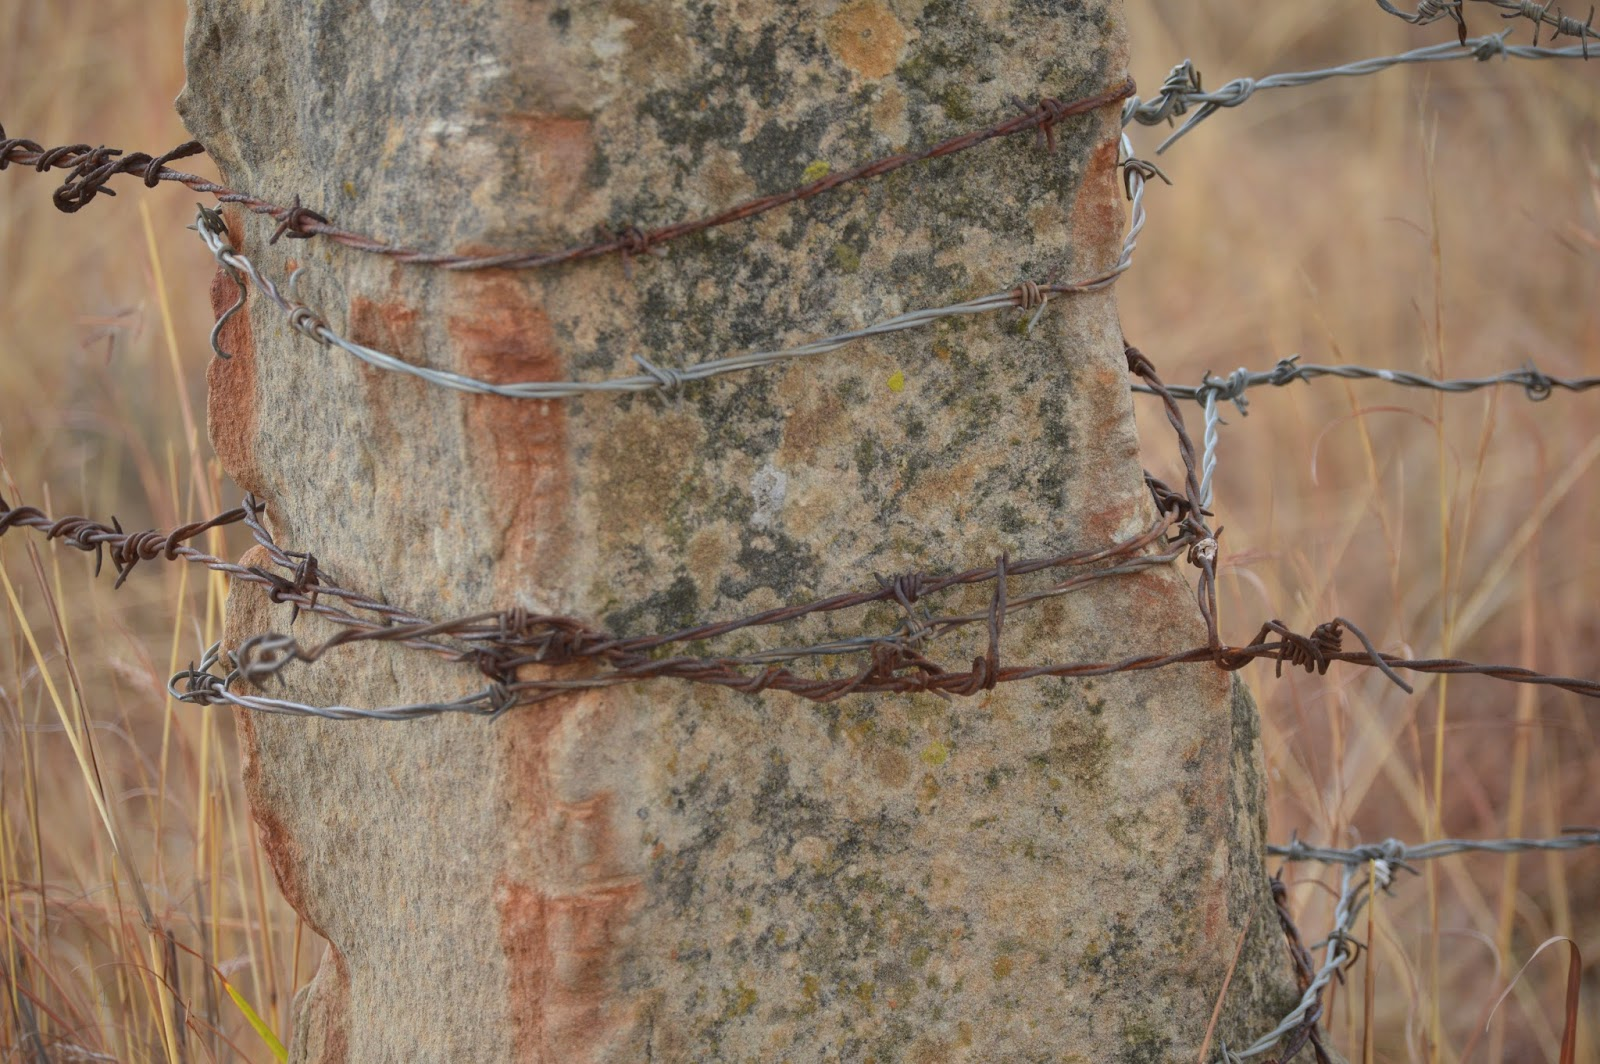 De Oude Huize Yard: Barbed Wire